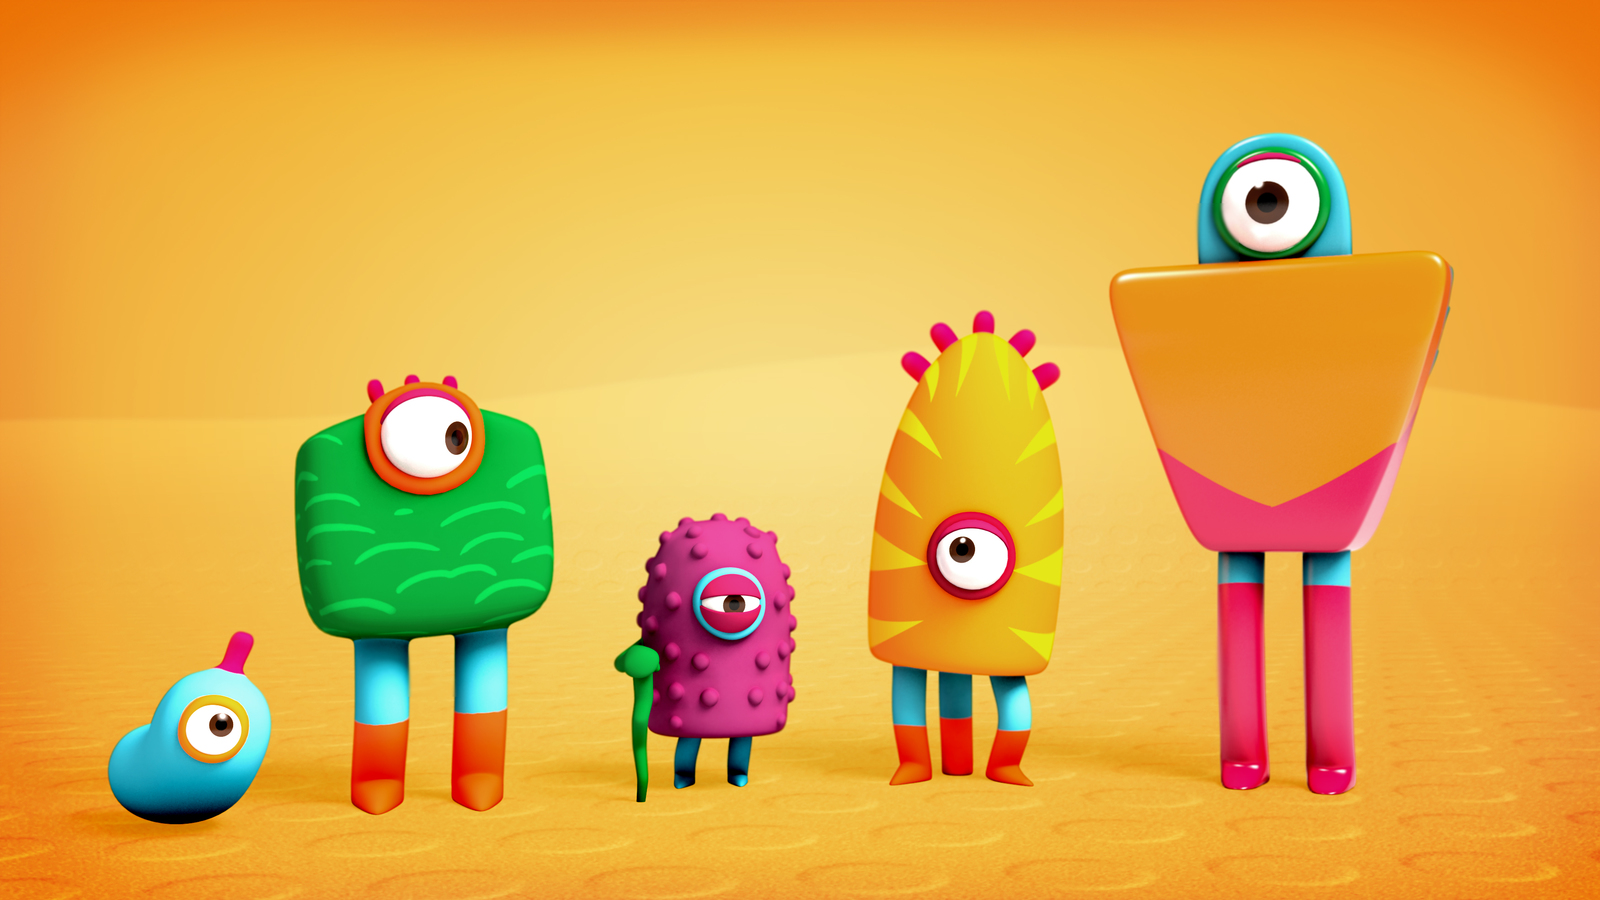 final 3d render of characters